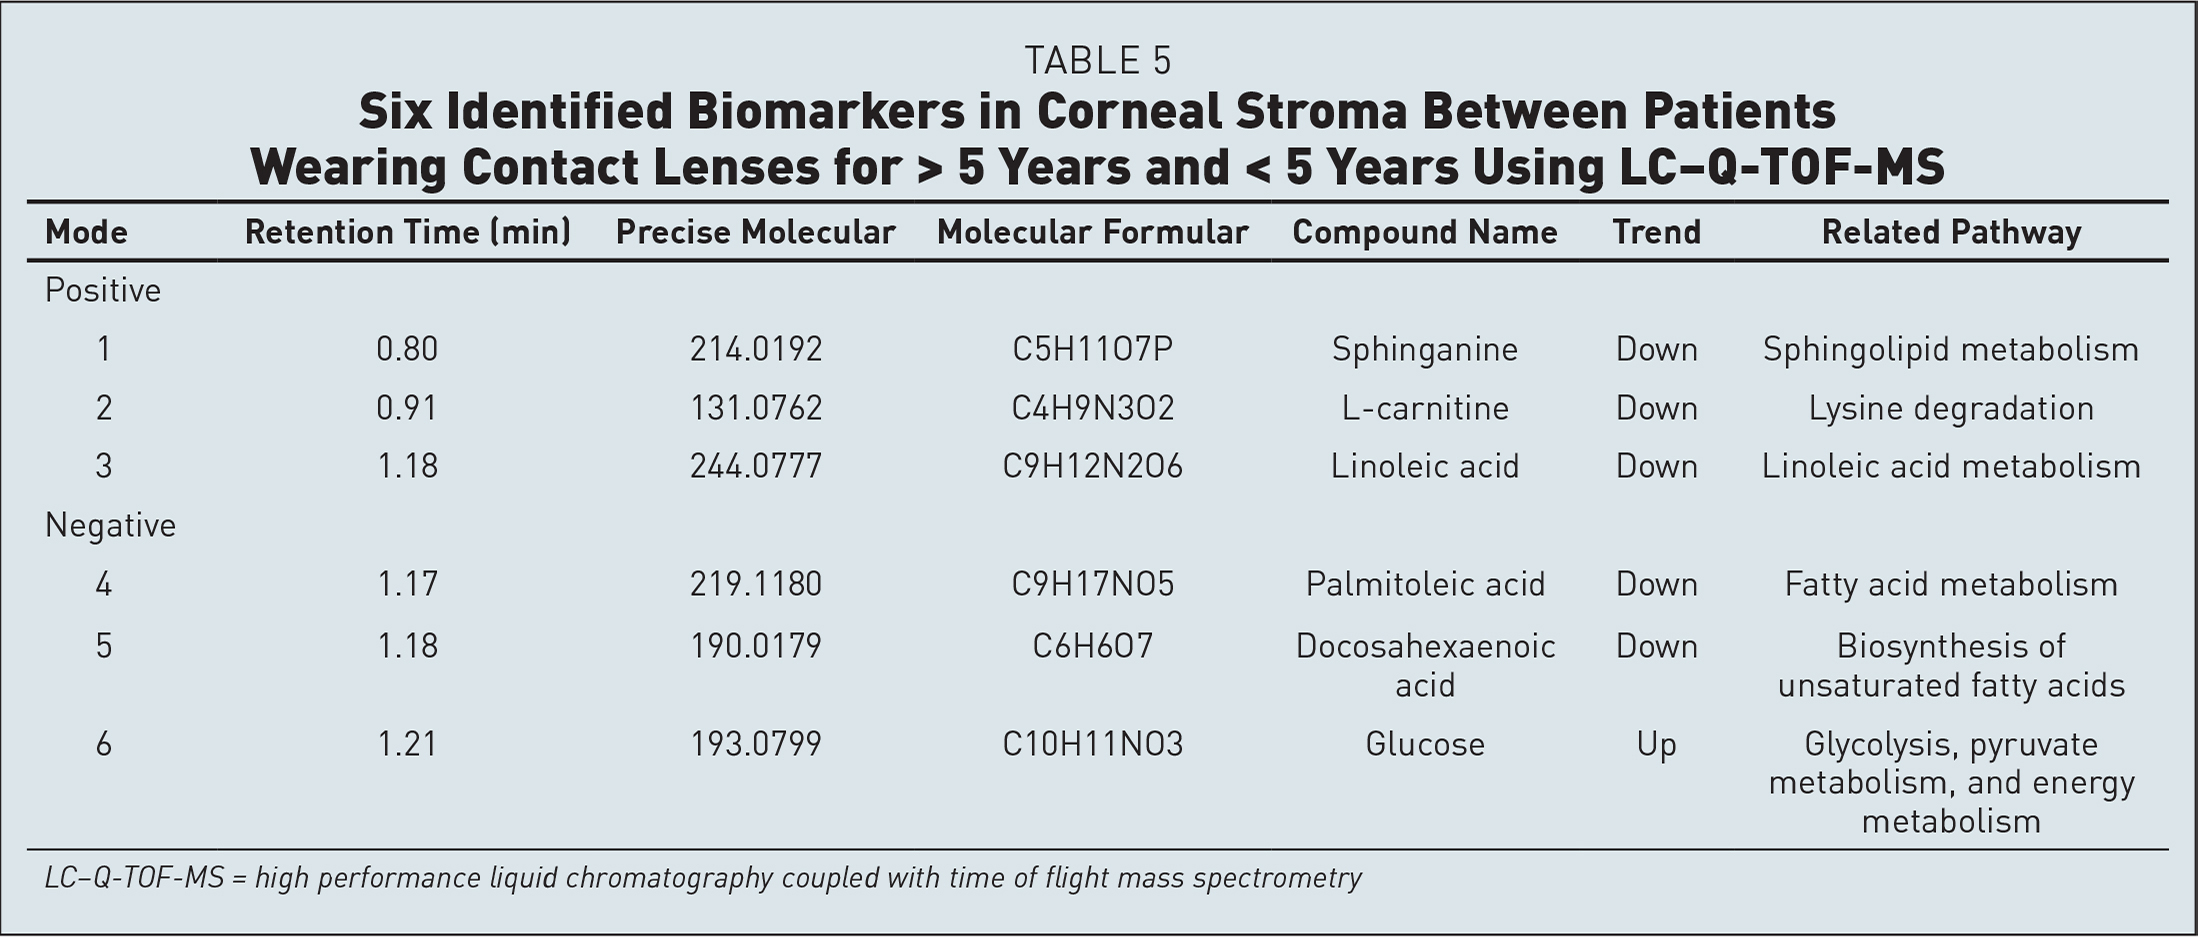 Six Identified Biomarkers in Corneal Stroma Between Patients Wearing Contact Lenses for > 5 Years and < 5 Years Using LC–Q-TOF-MS